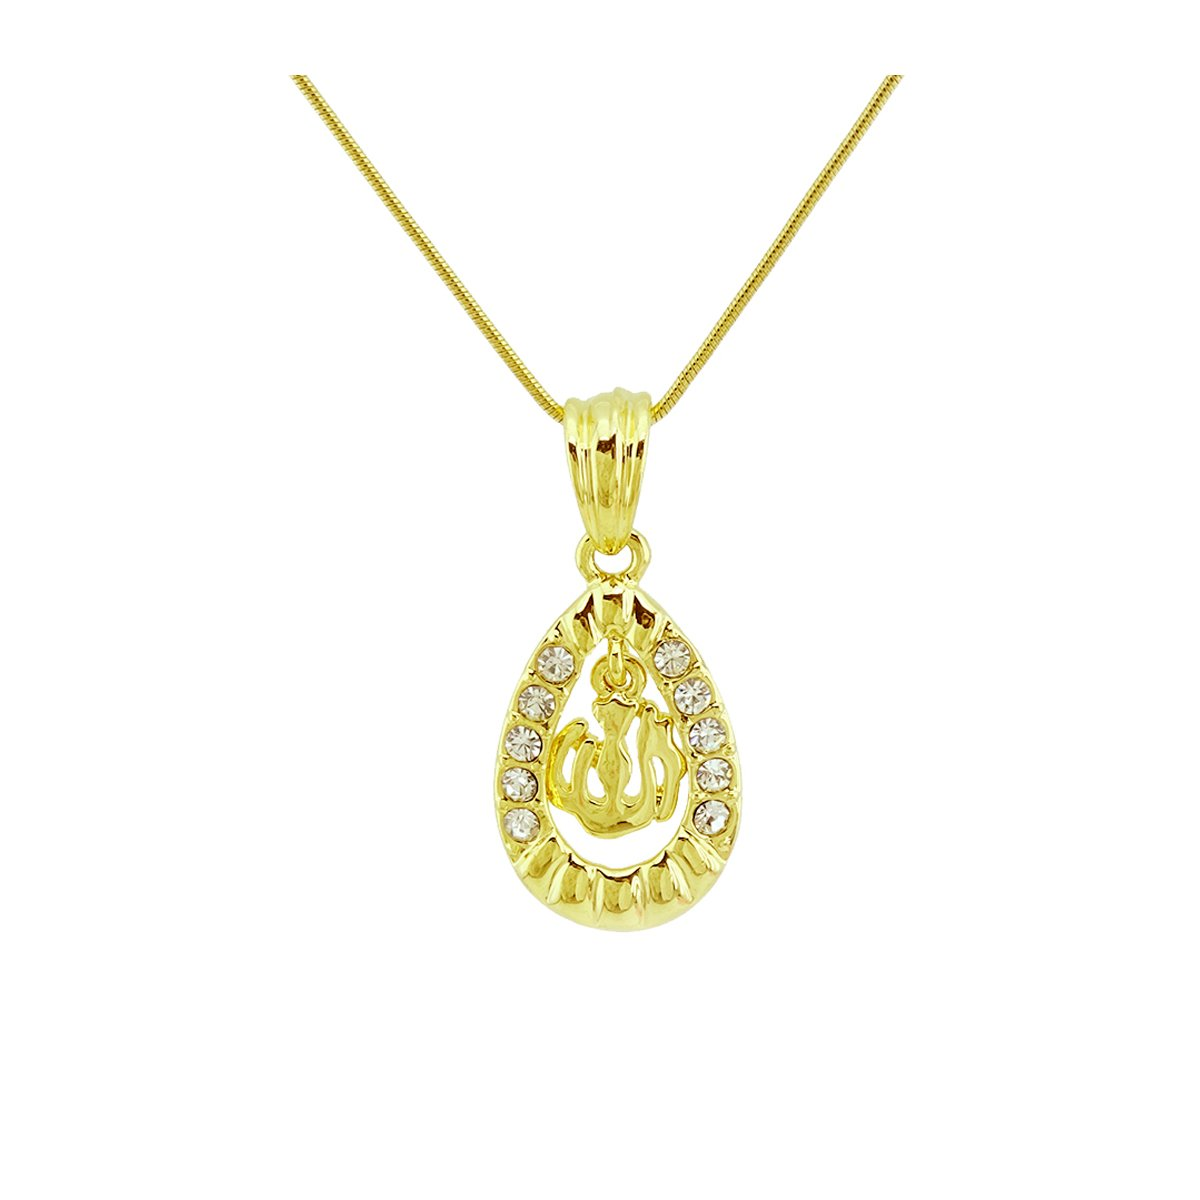 Passage 7 18K Real Gold Plated Allah Muslim Islamic Water Drop Pendant Necklace Chain Length 48CM